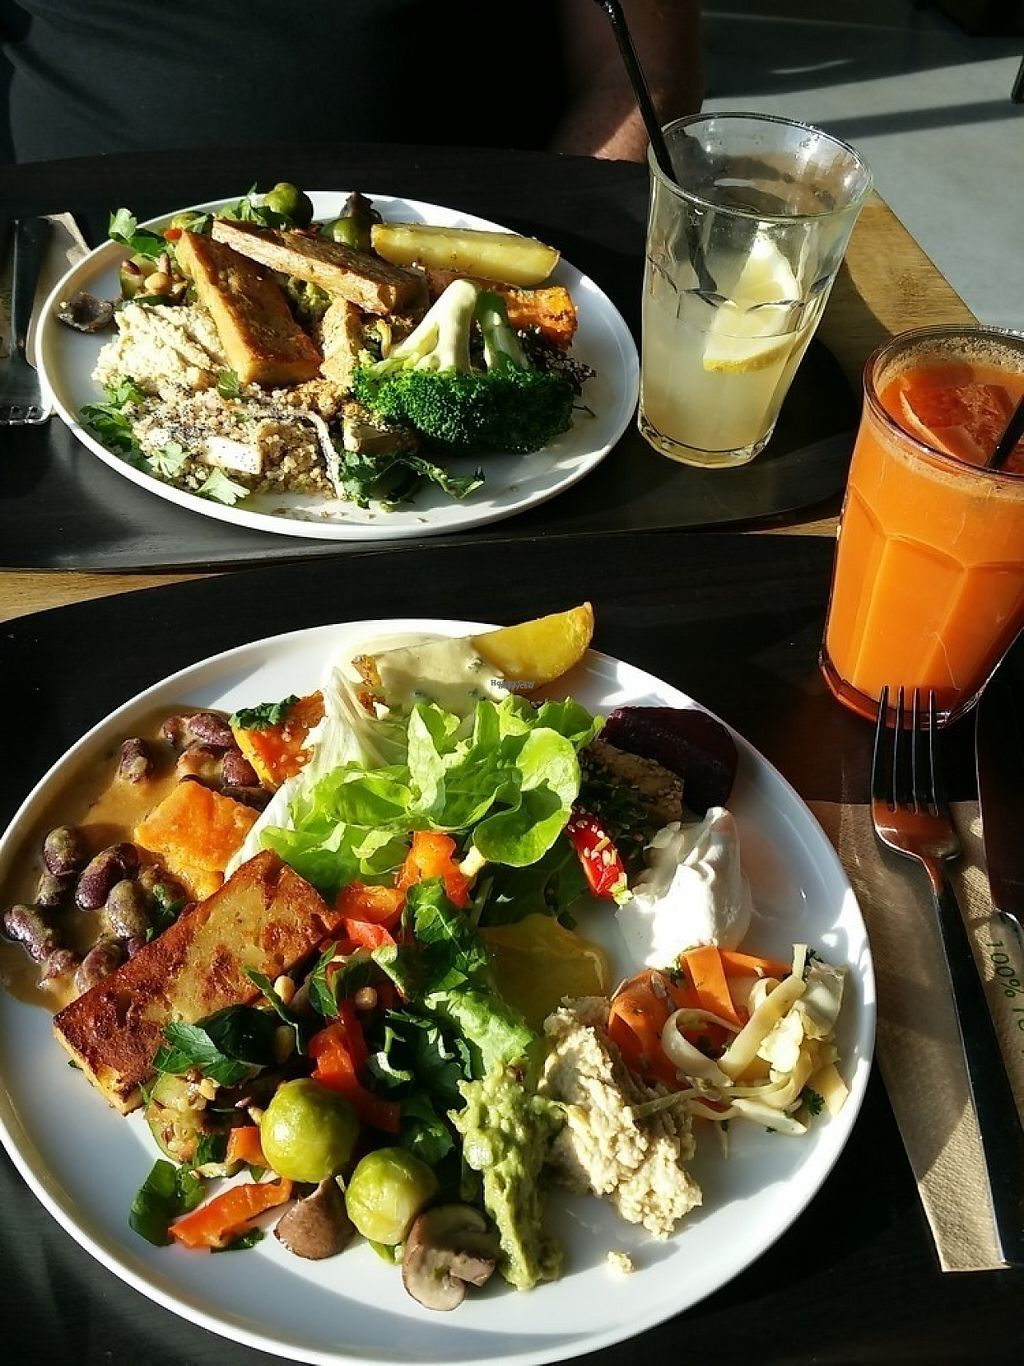 """Photo of Noordoever  by <a href=""""/members/profile/TrudiBruges"""">TrudiBruges</a> <br/>lunch at Noordoever, Louvain. Pay per weight. These two dishes were 30€.  <br/> February 21, 2017  - <a href='/contact/abuse/image/72849/228828'>Report</a>"""